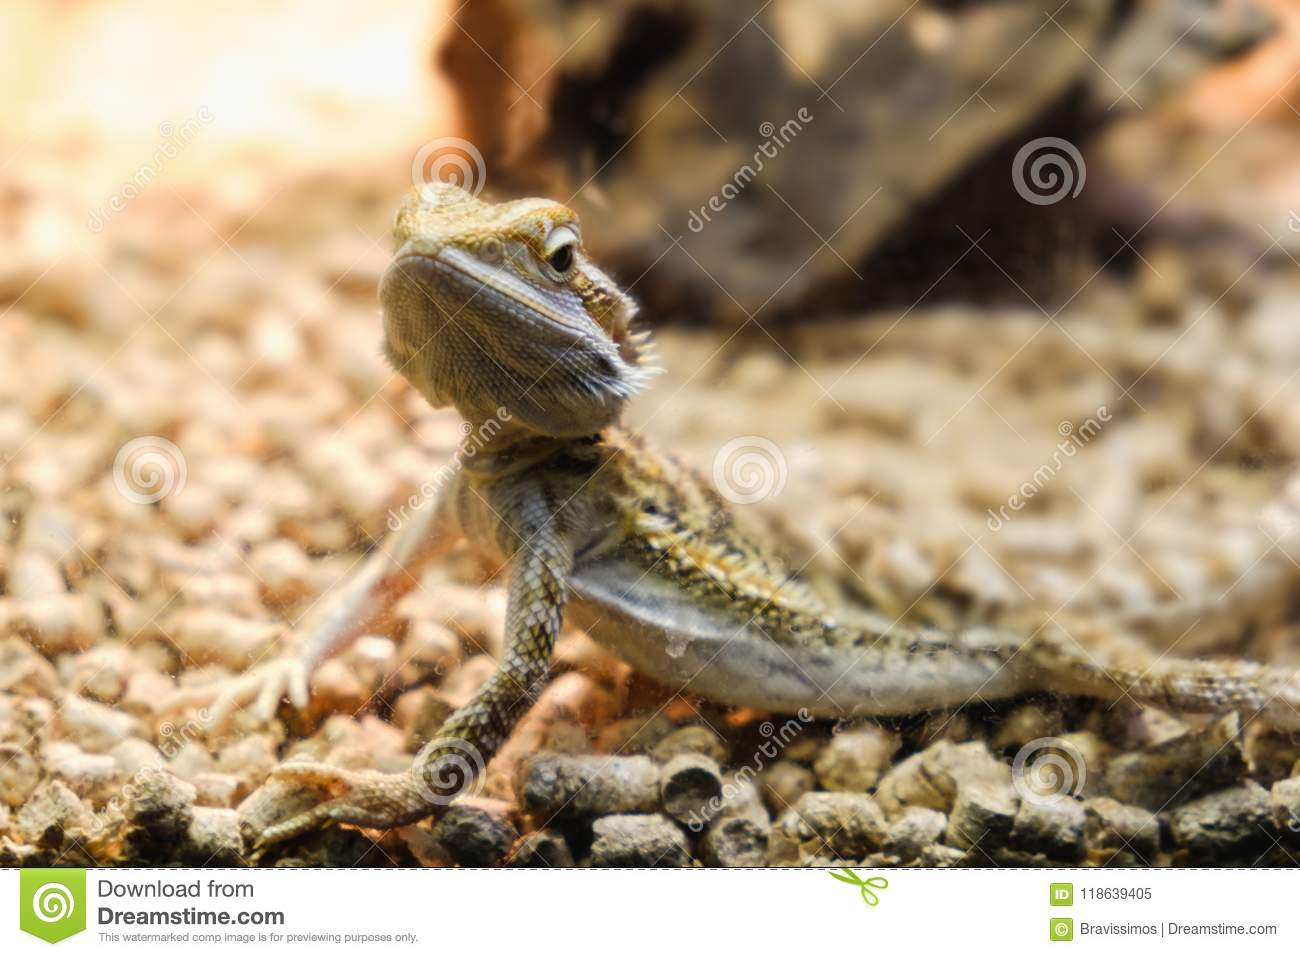 Bearded Dragon In A Terrarium Leaning Against A Log And Looking In